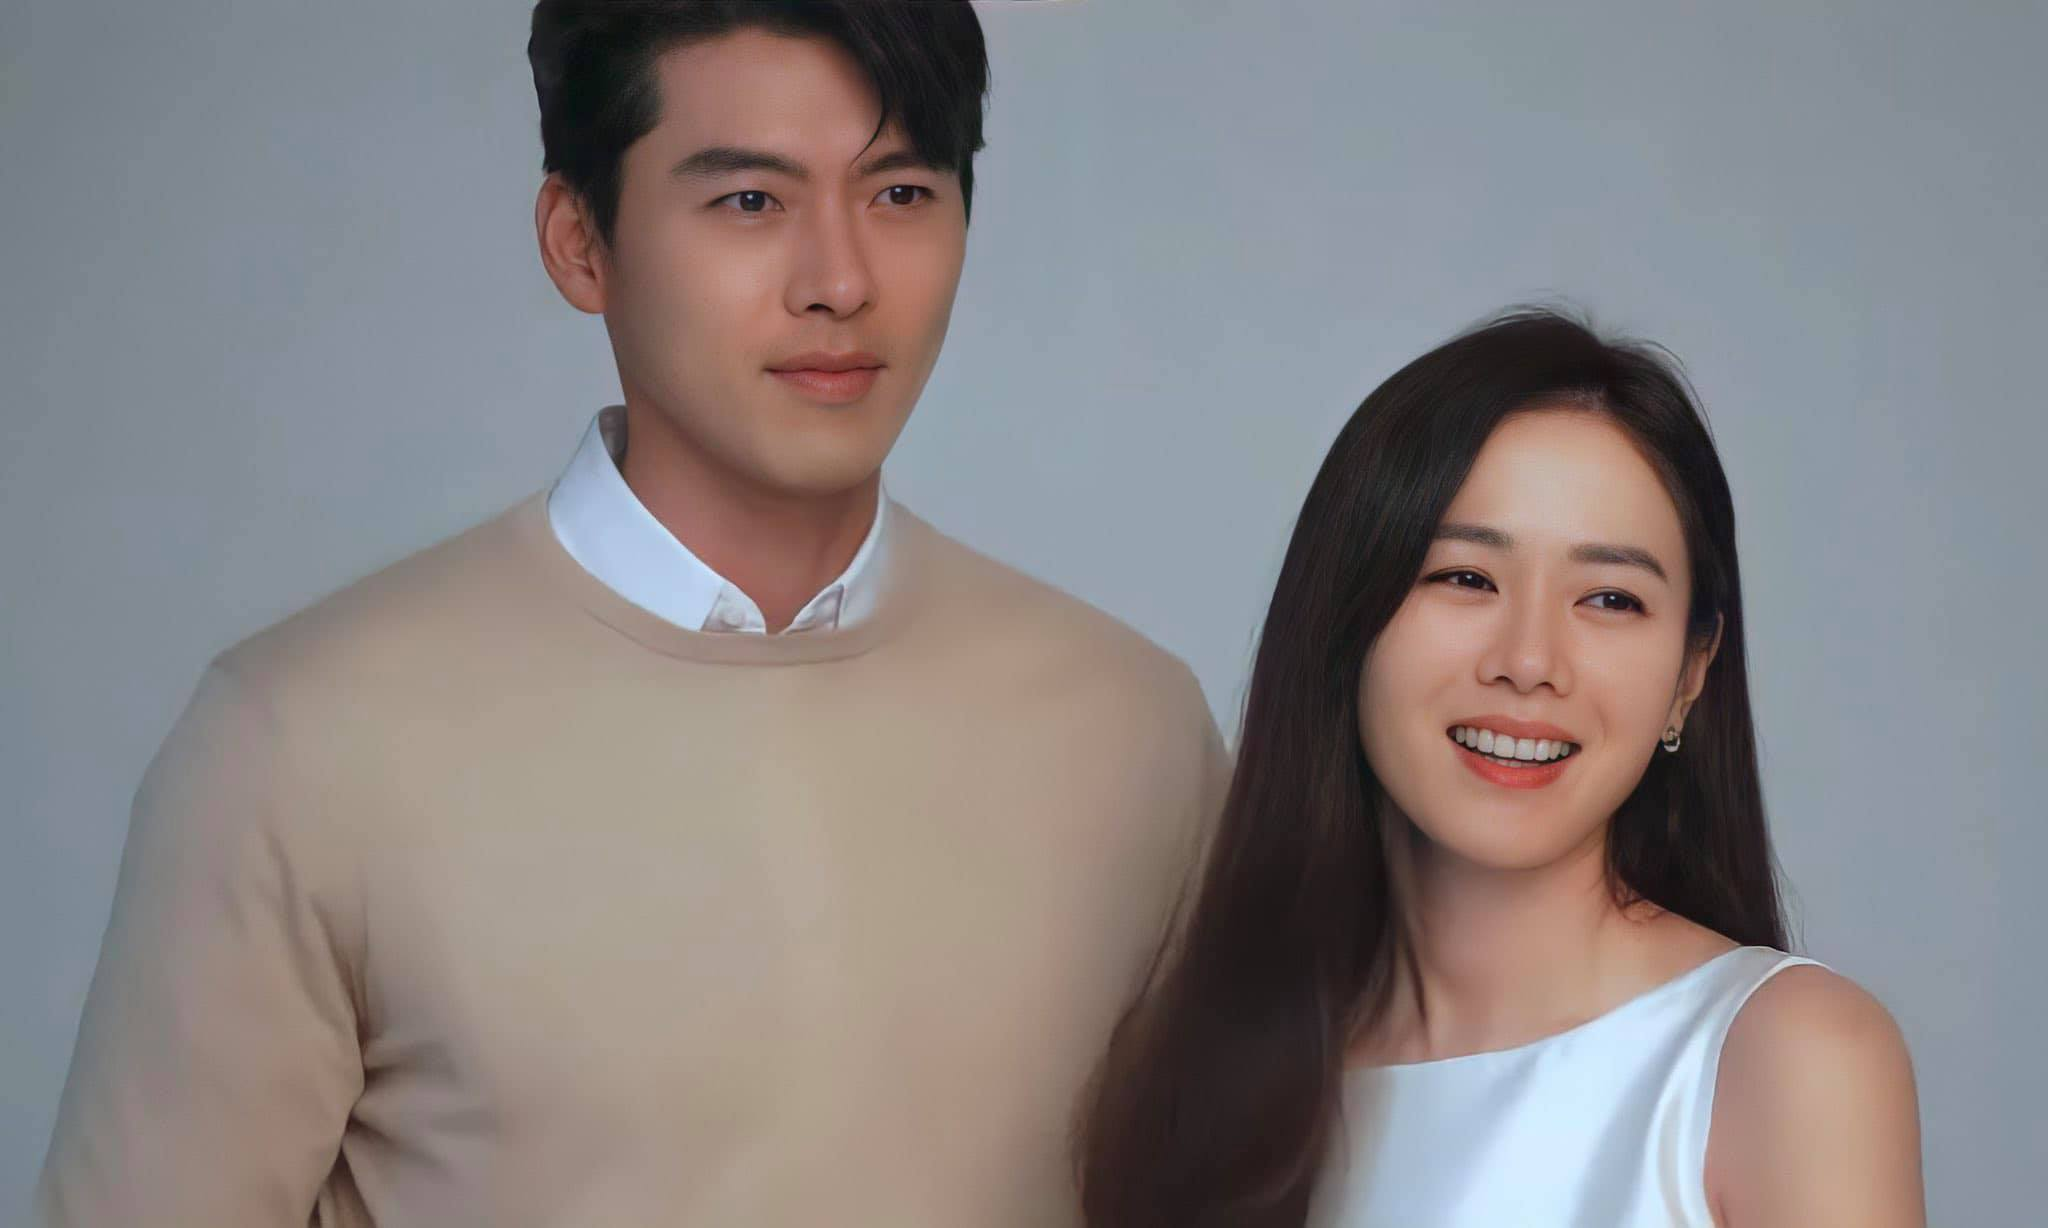 Hyun Bin and Son Ye Jin after dating: Revealing the advertising project's behind-the-scenes is too cute and sweet, netizens ask when they get married? 1